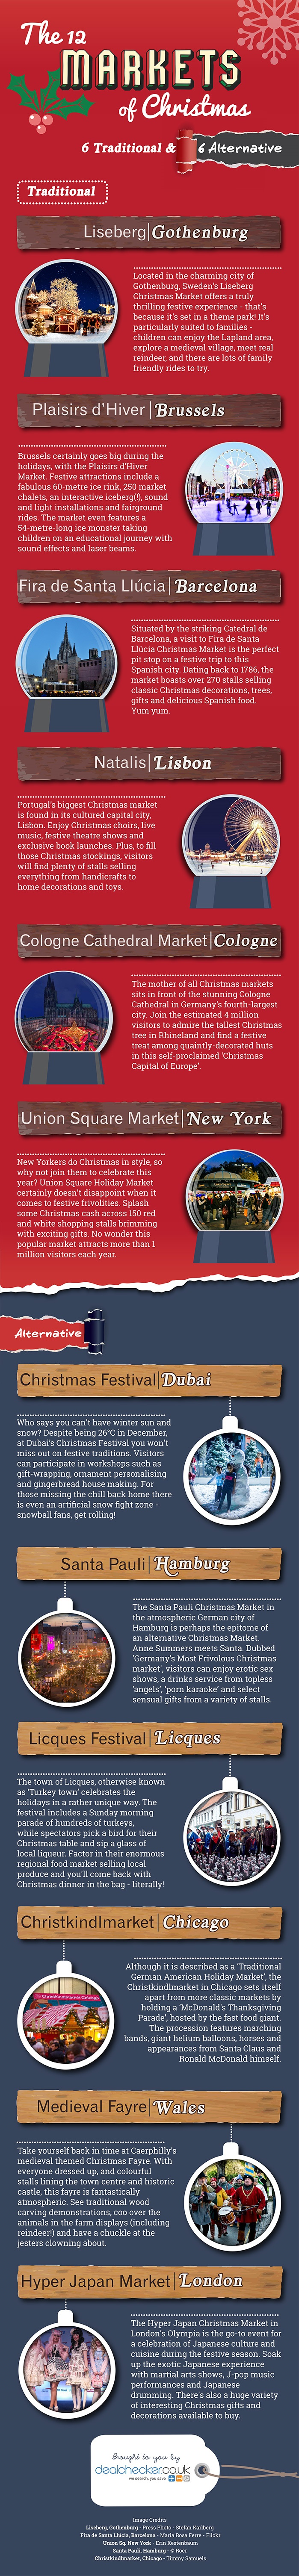 The 12 Markets of Christmas